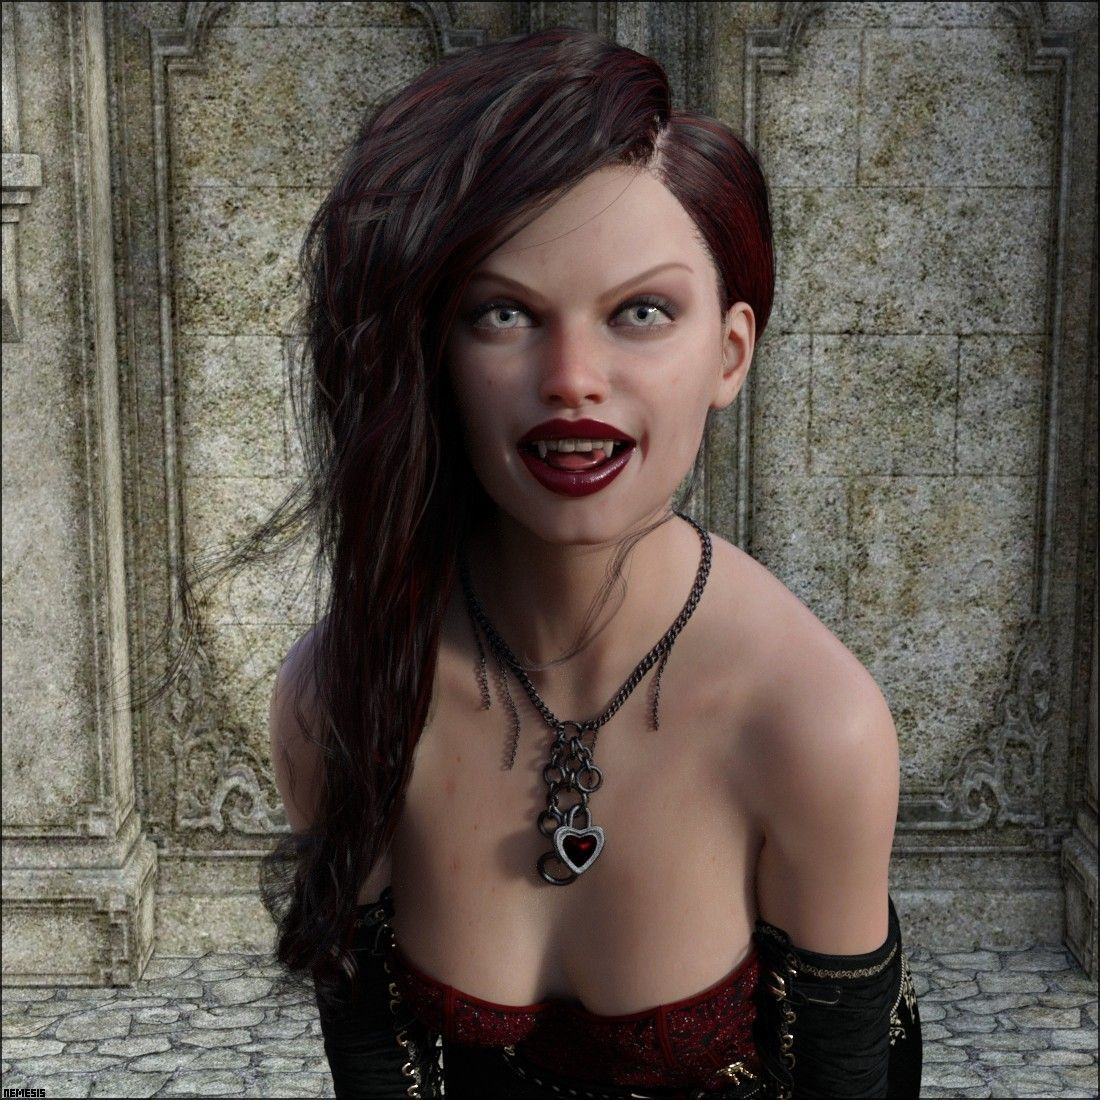 Awesome vampire by nemesis74s